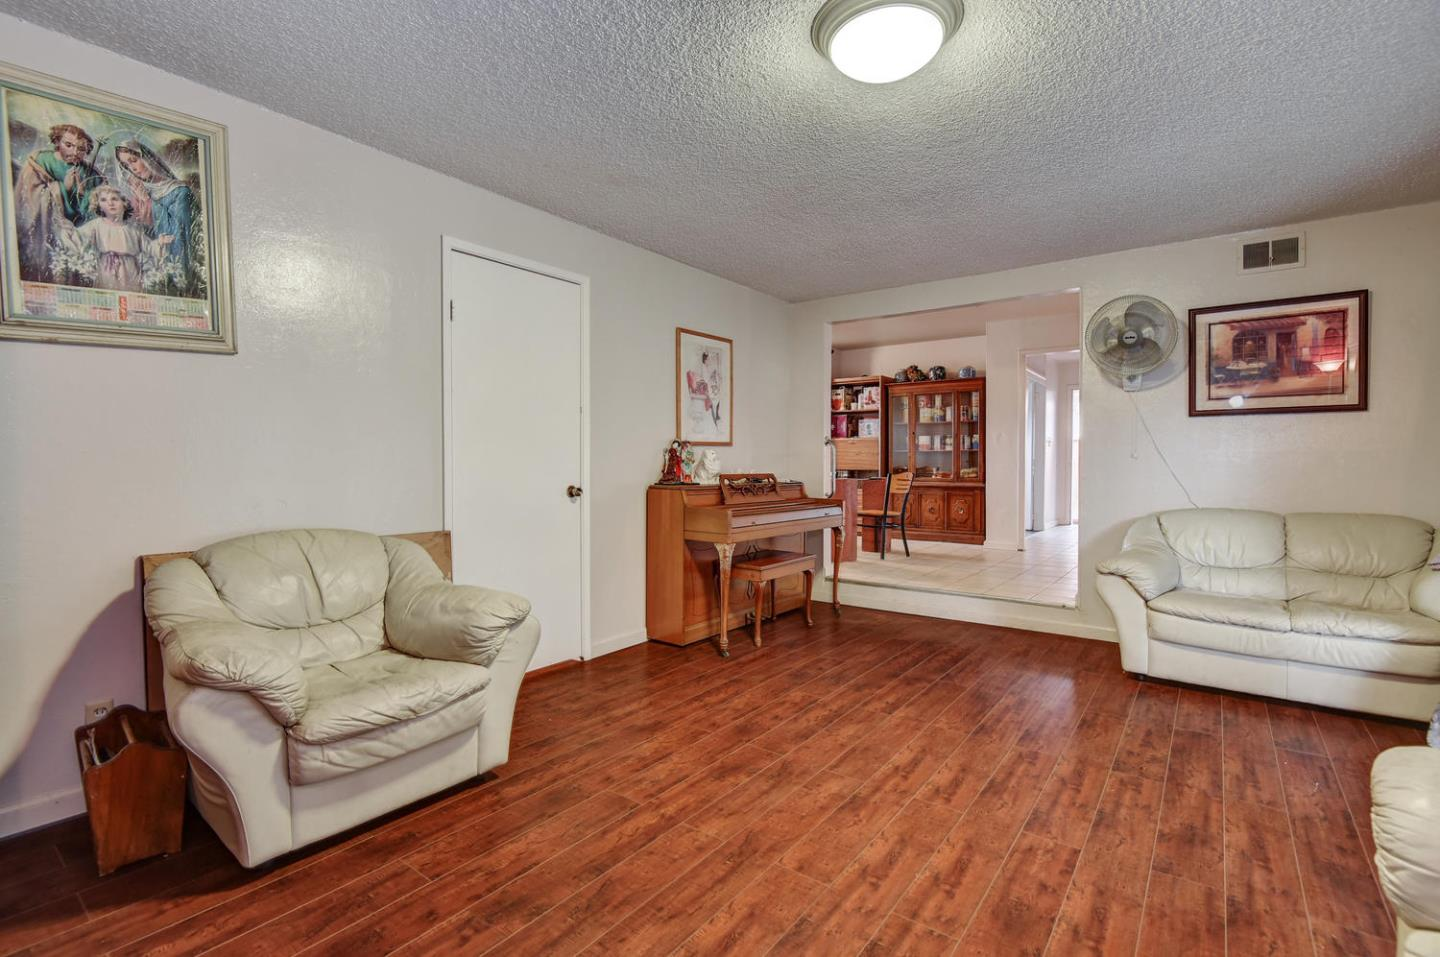 Additional photo for property listing at 264 Ketchum Drive  San Jose, Kalifornien 95127 Vereinigte Staaten